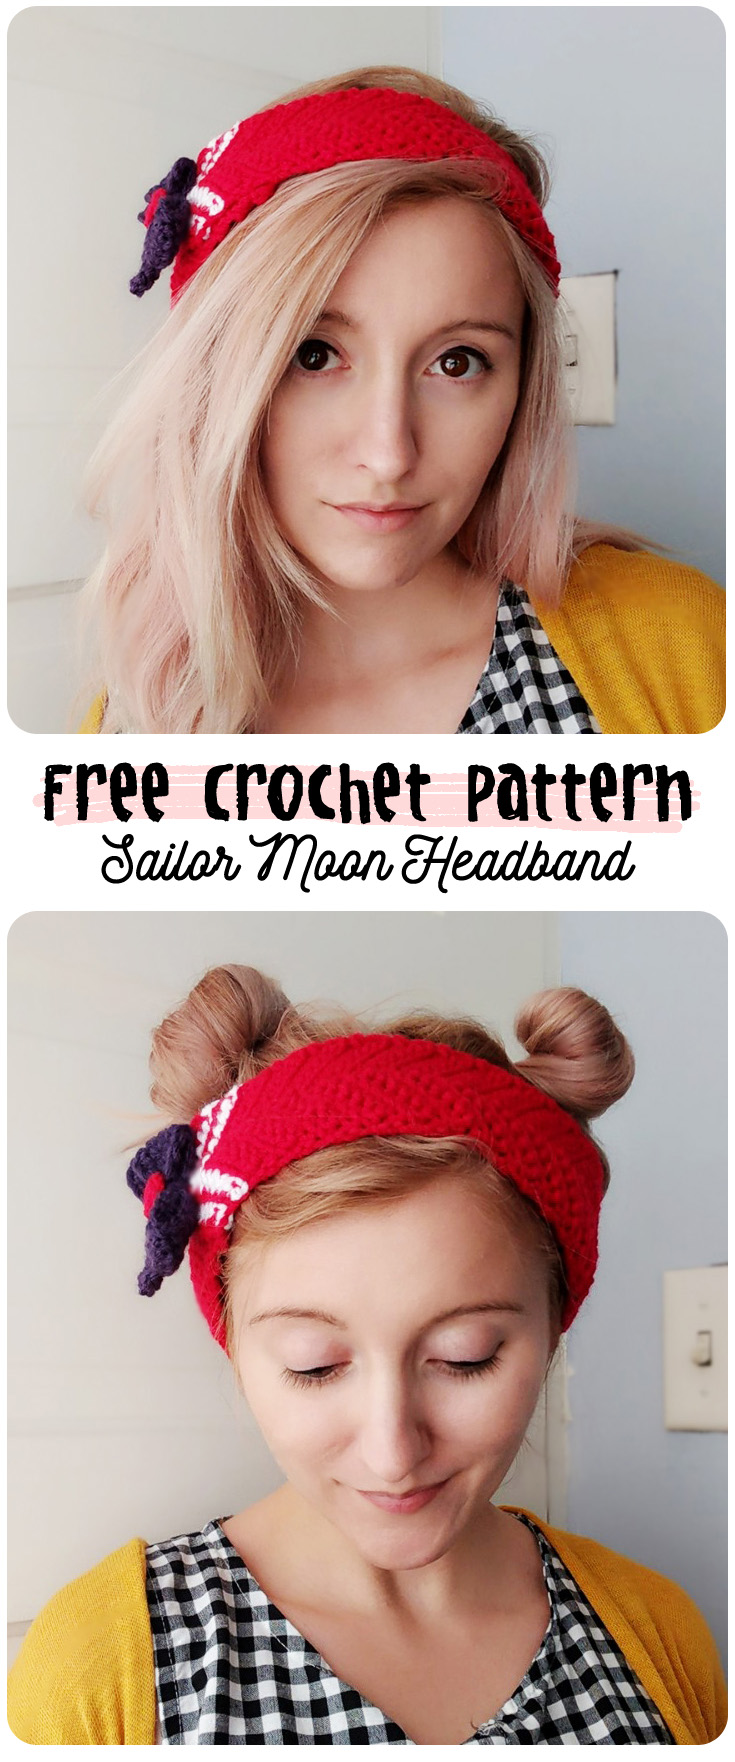 free-crochet-pattern-sailor-moon-headband (8).jpg